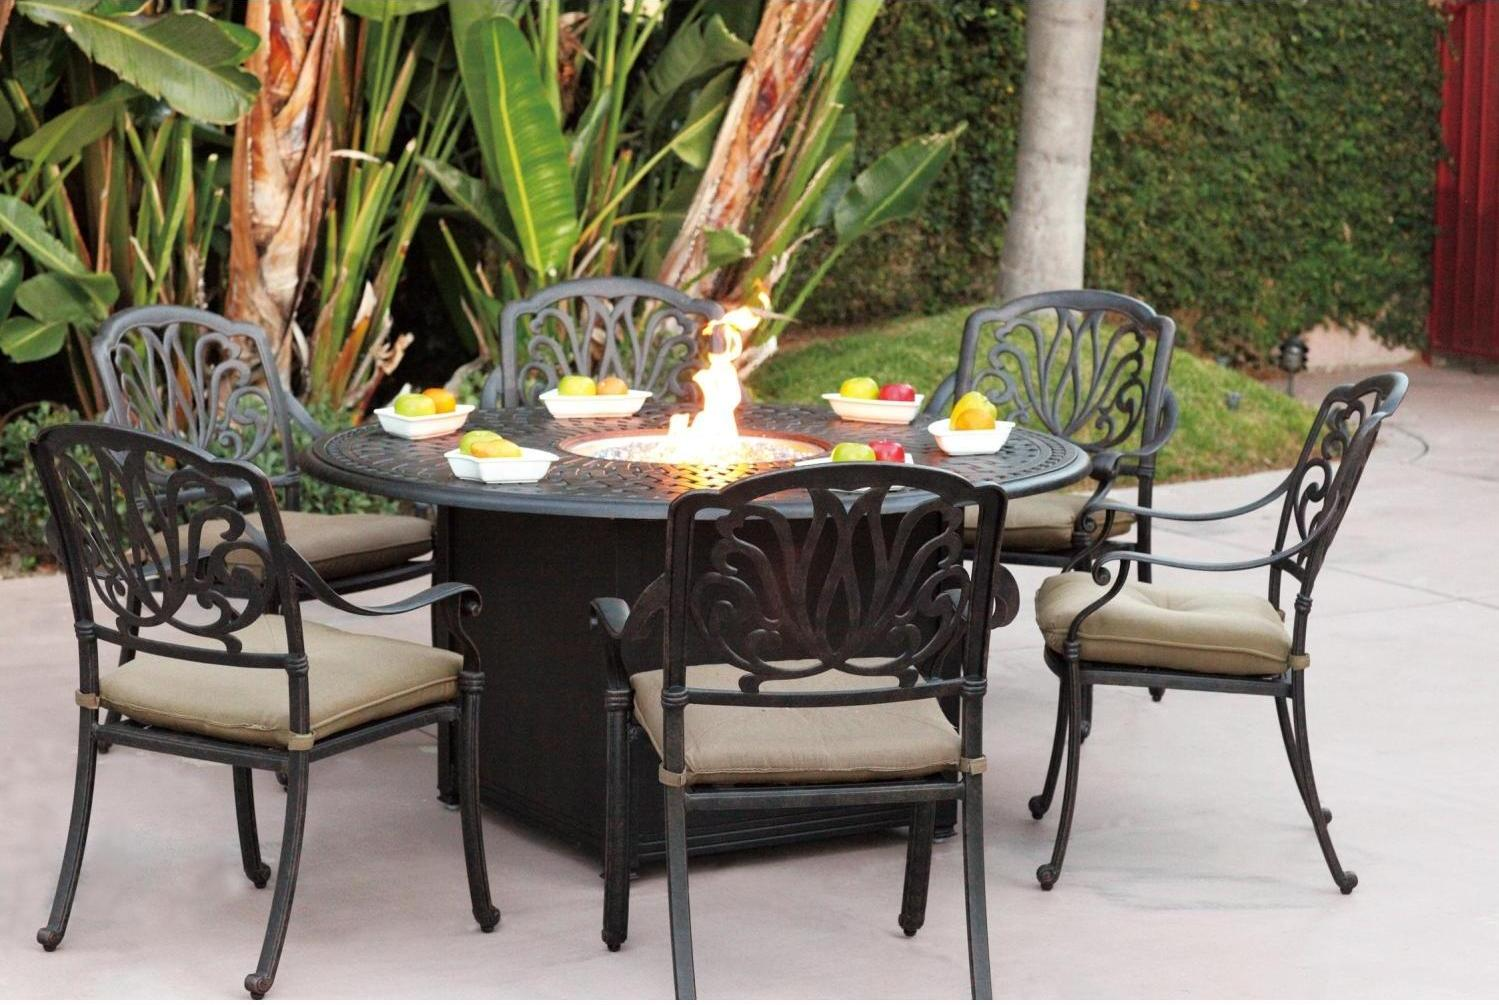 outdoor dining tables with gas fire pit photo - 3 - Outdoor Dining Tables With Gas Fire Pit Interior & Exterior Doors